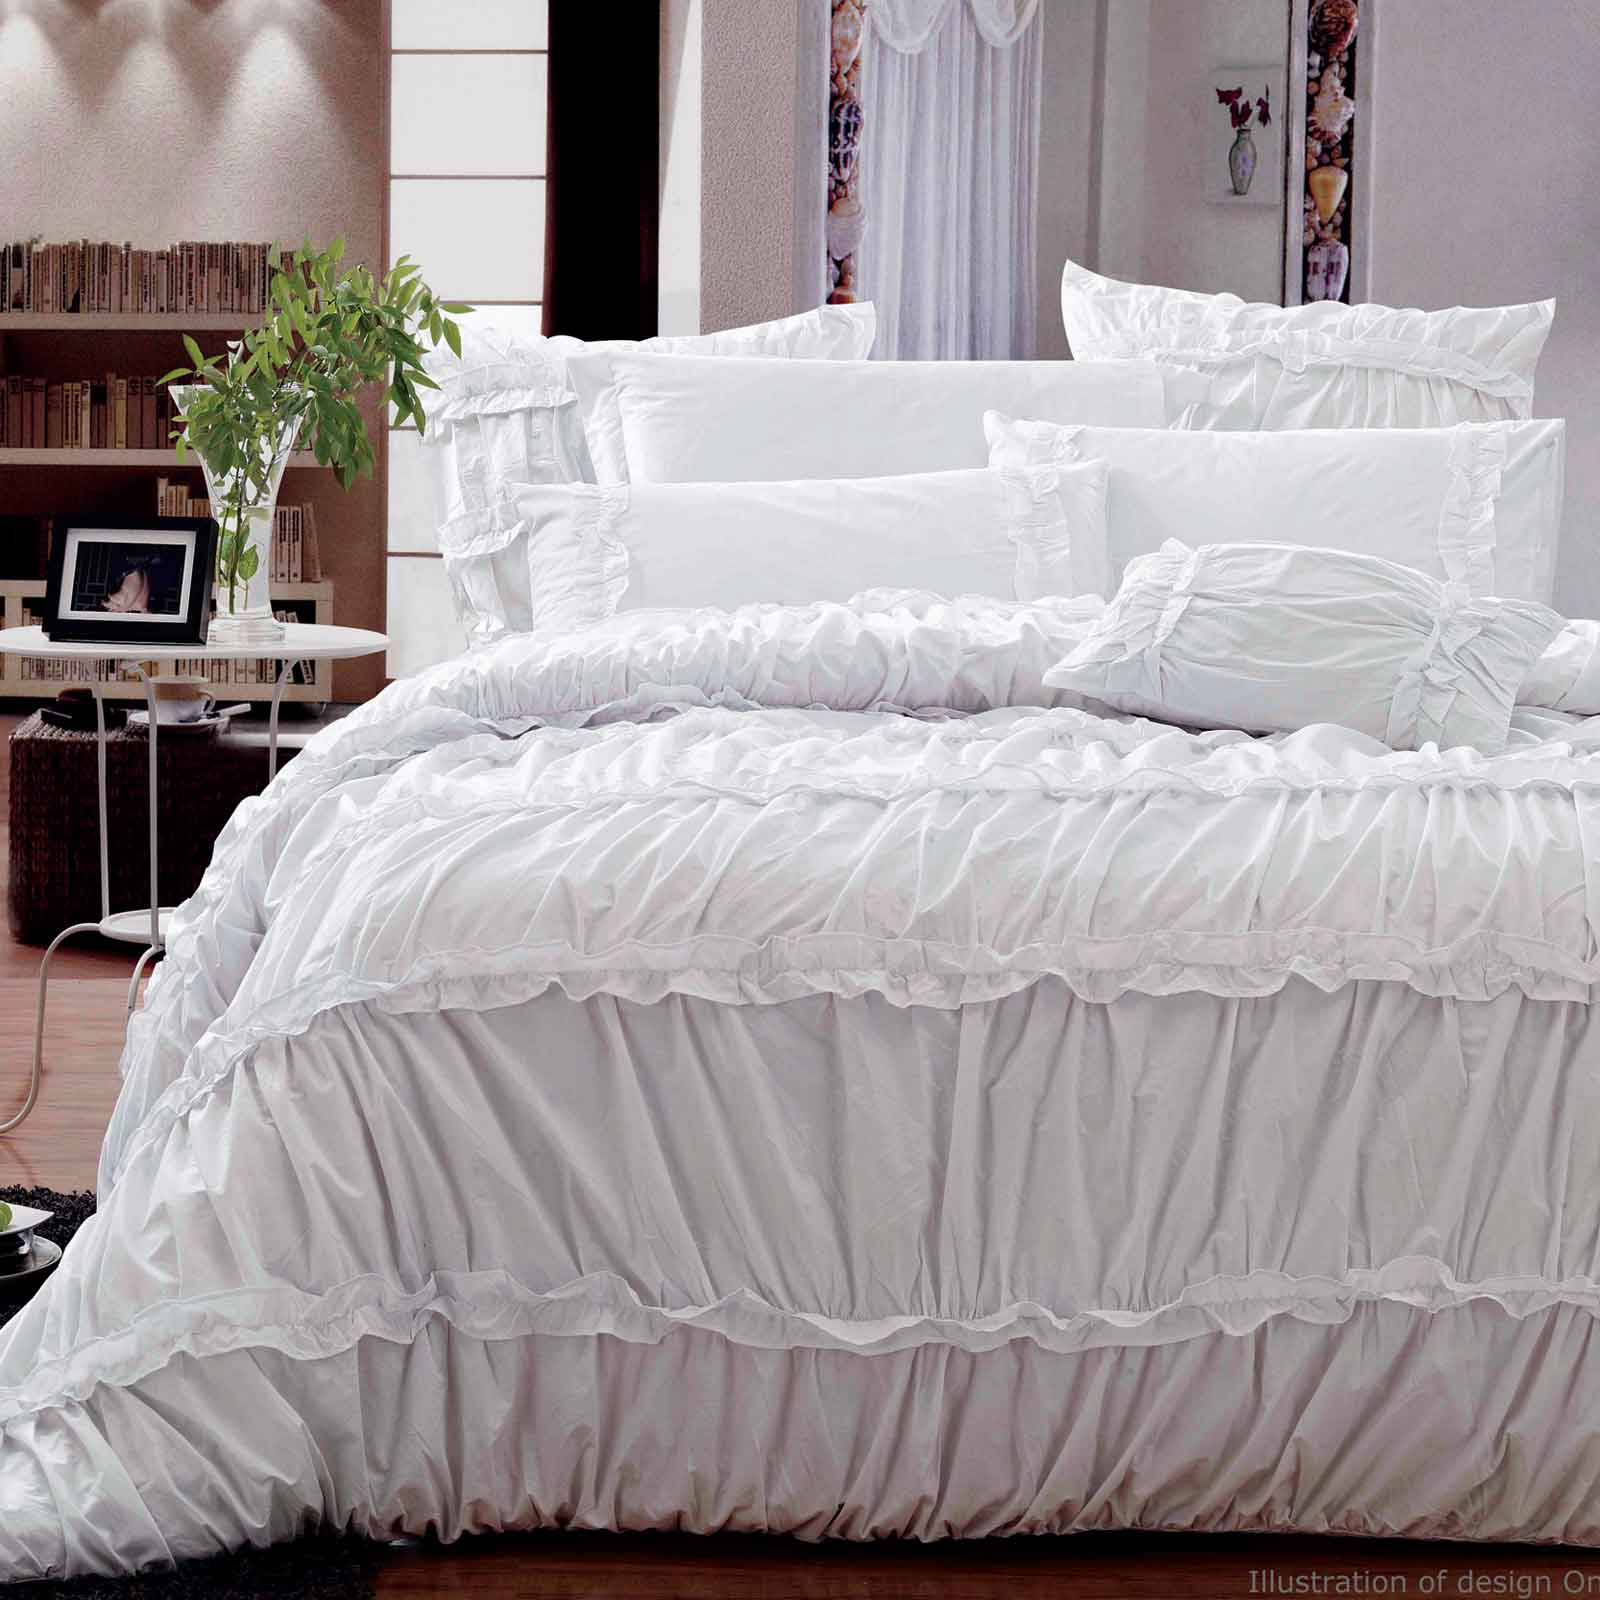 100-Cotton-King-Duvet-Quilt-Cover-Set-Ruched-Design-Ruffle-Bed-linen-B00001K